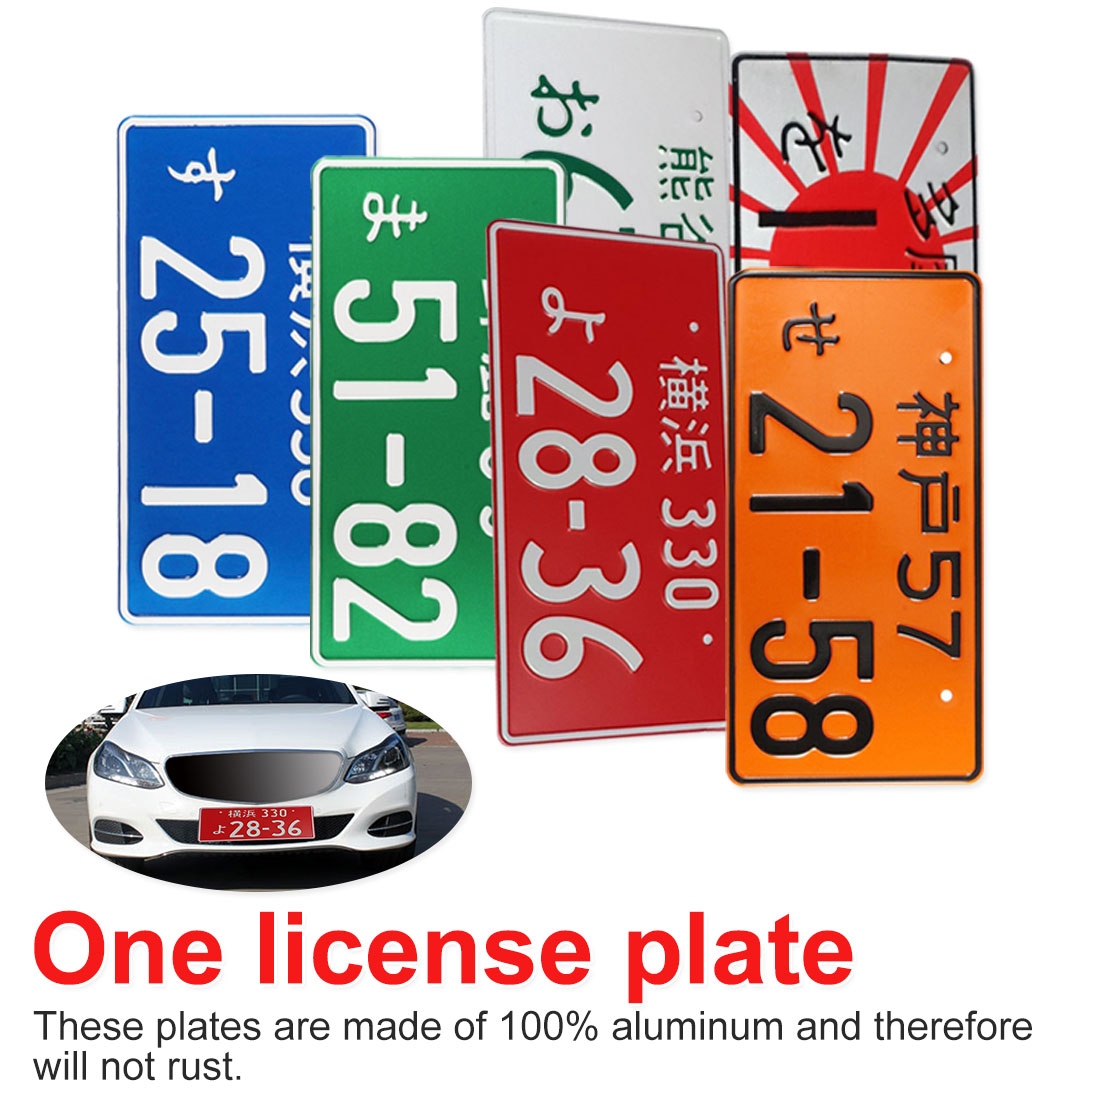 For Bicycle Scooter Plate Aluminum Tag Universal Car Motorcycle Japanese For Racing Plates License